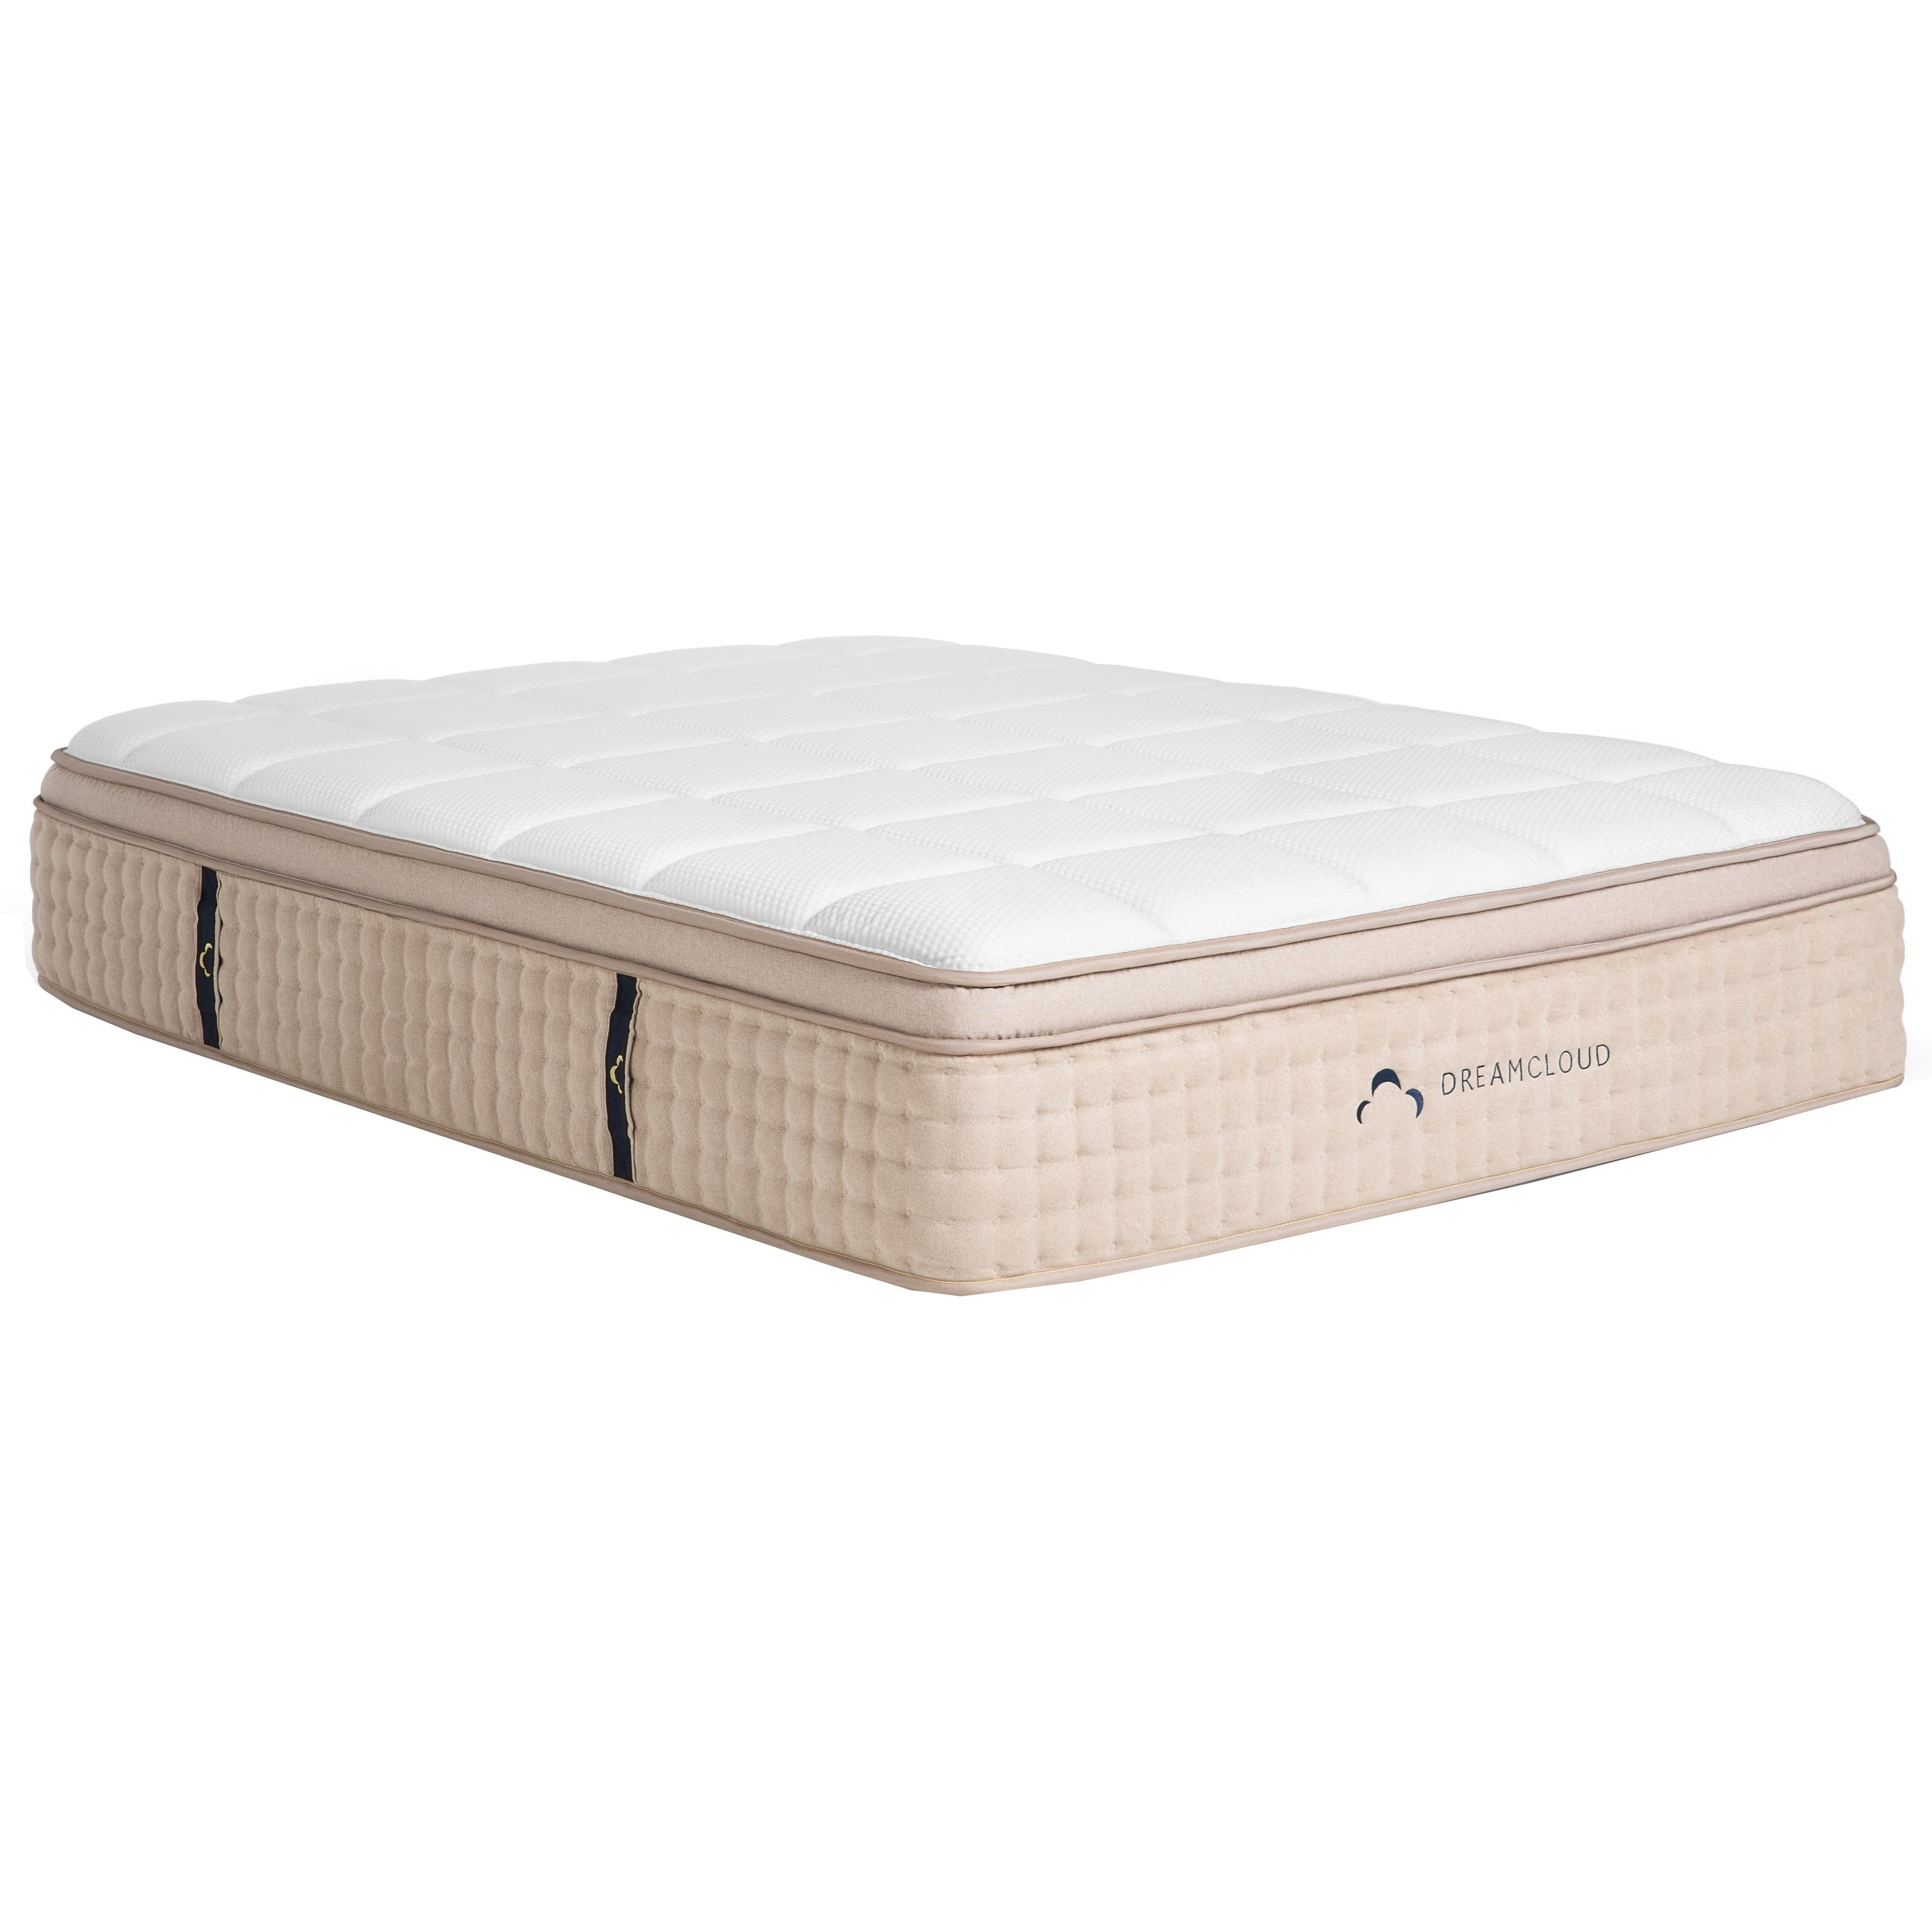 """Dream Cloud Premier Euro Top Full 15"""" Hybrid Euro Top Mattress by DreamCloud at Rooms and Rest"""